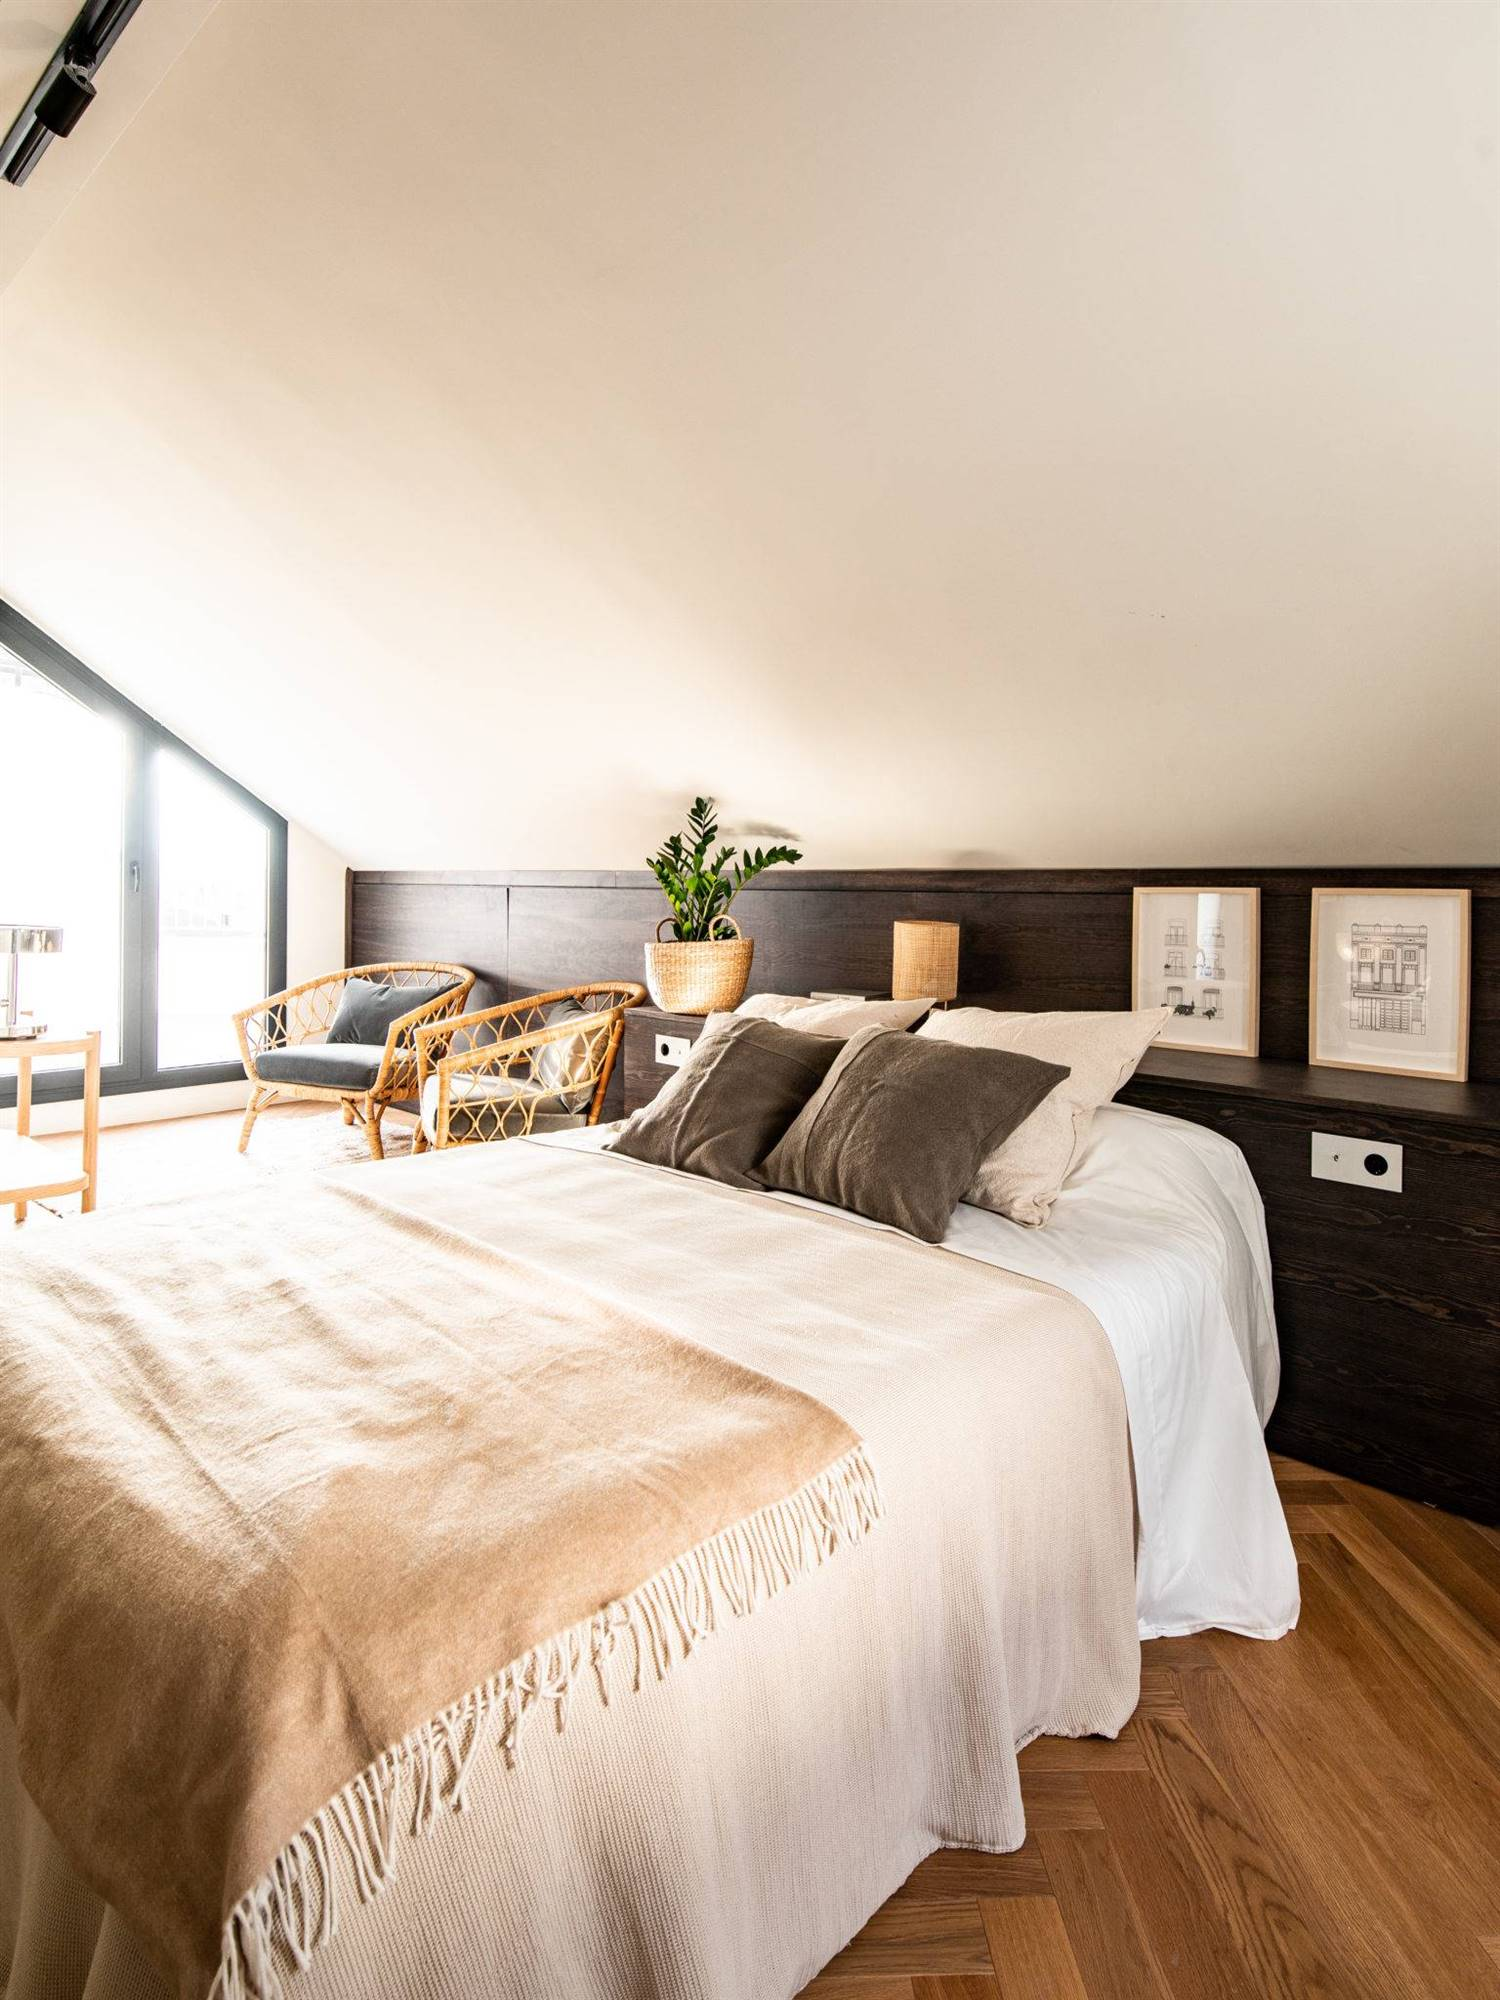 The Home Hunter. Un dormitorio abuhardillado